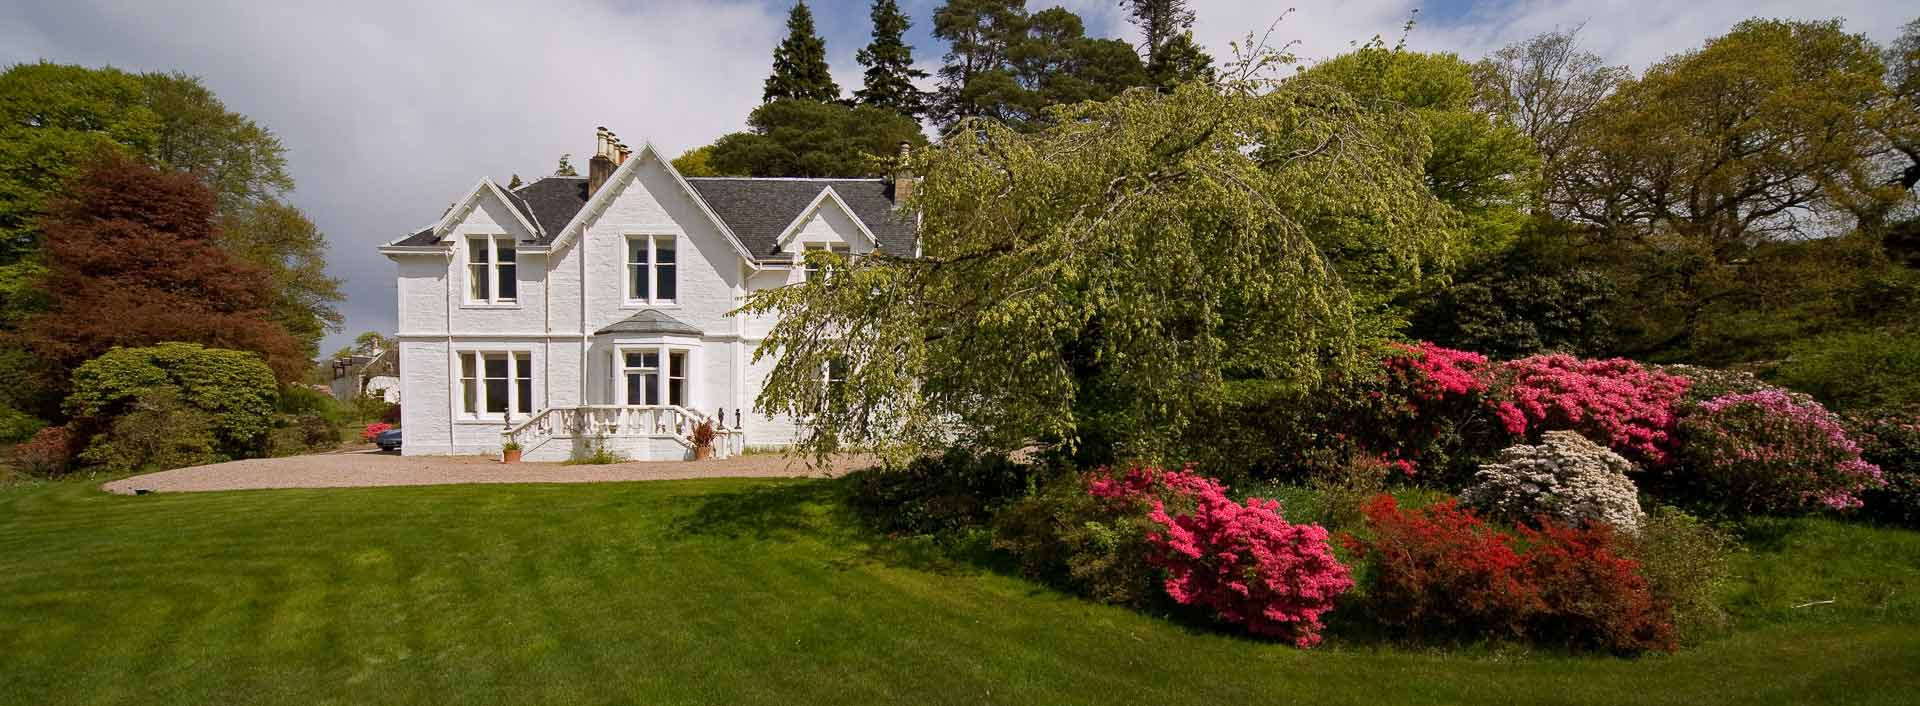 Beautiful gardens at Druimneil House - country house B&B in Port Appin near Oban on the Argyll coast of Scotland